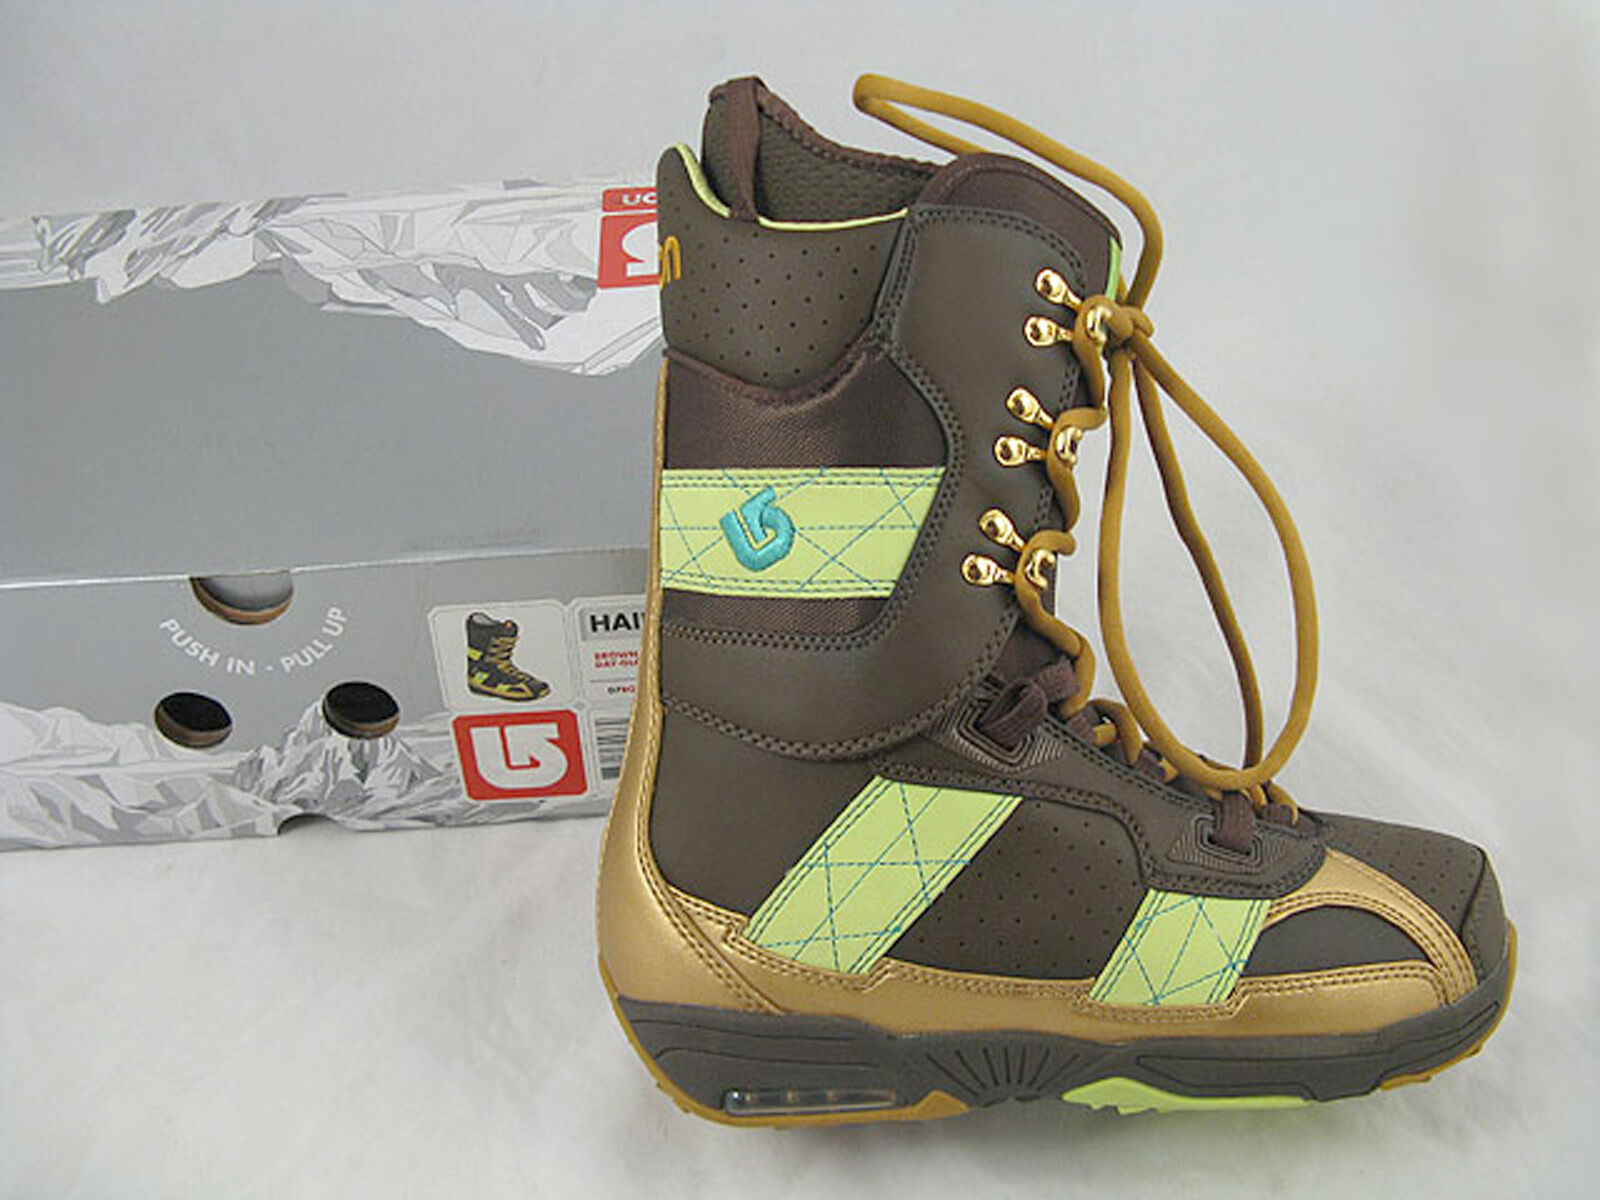 NEW  220 Burton Hail Snowboard Boots  US 7, Mondo 25, Euro 40  BROWN GLOW